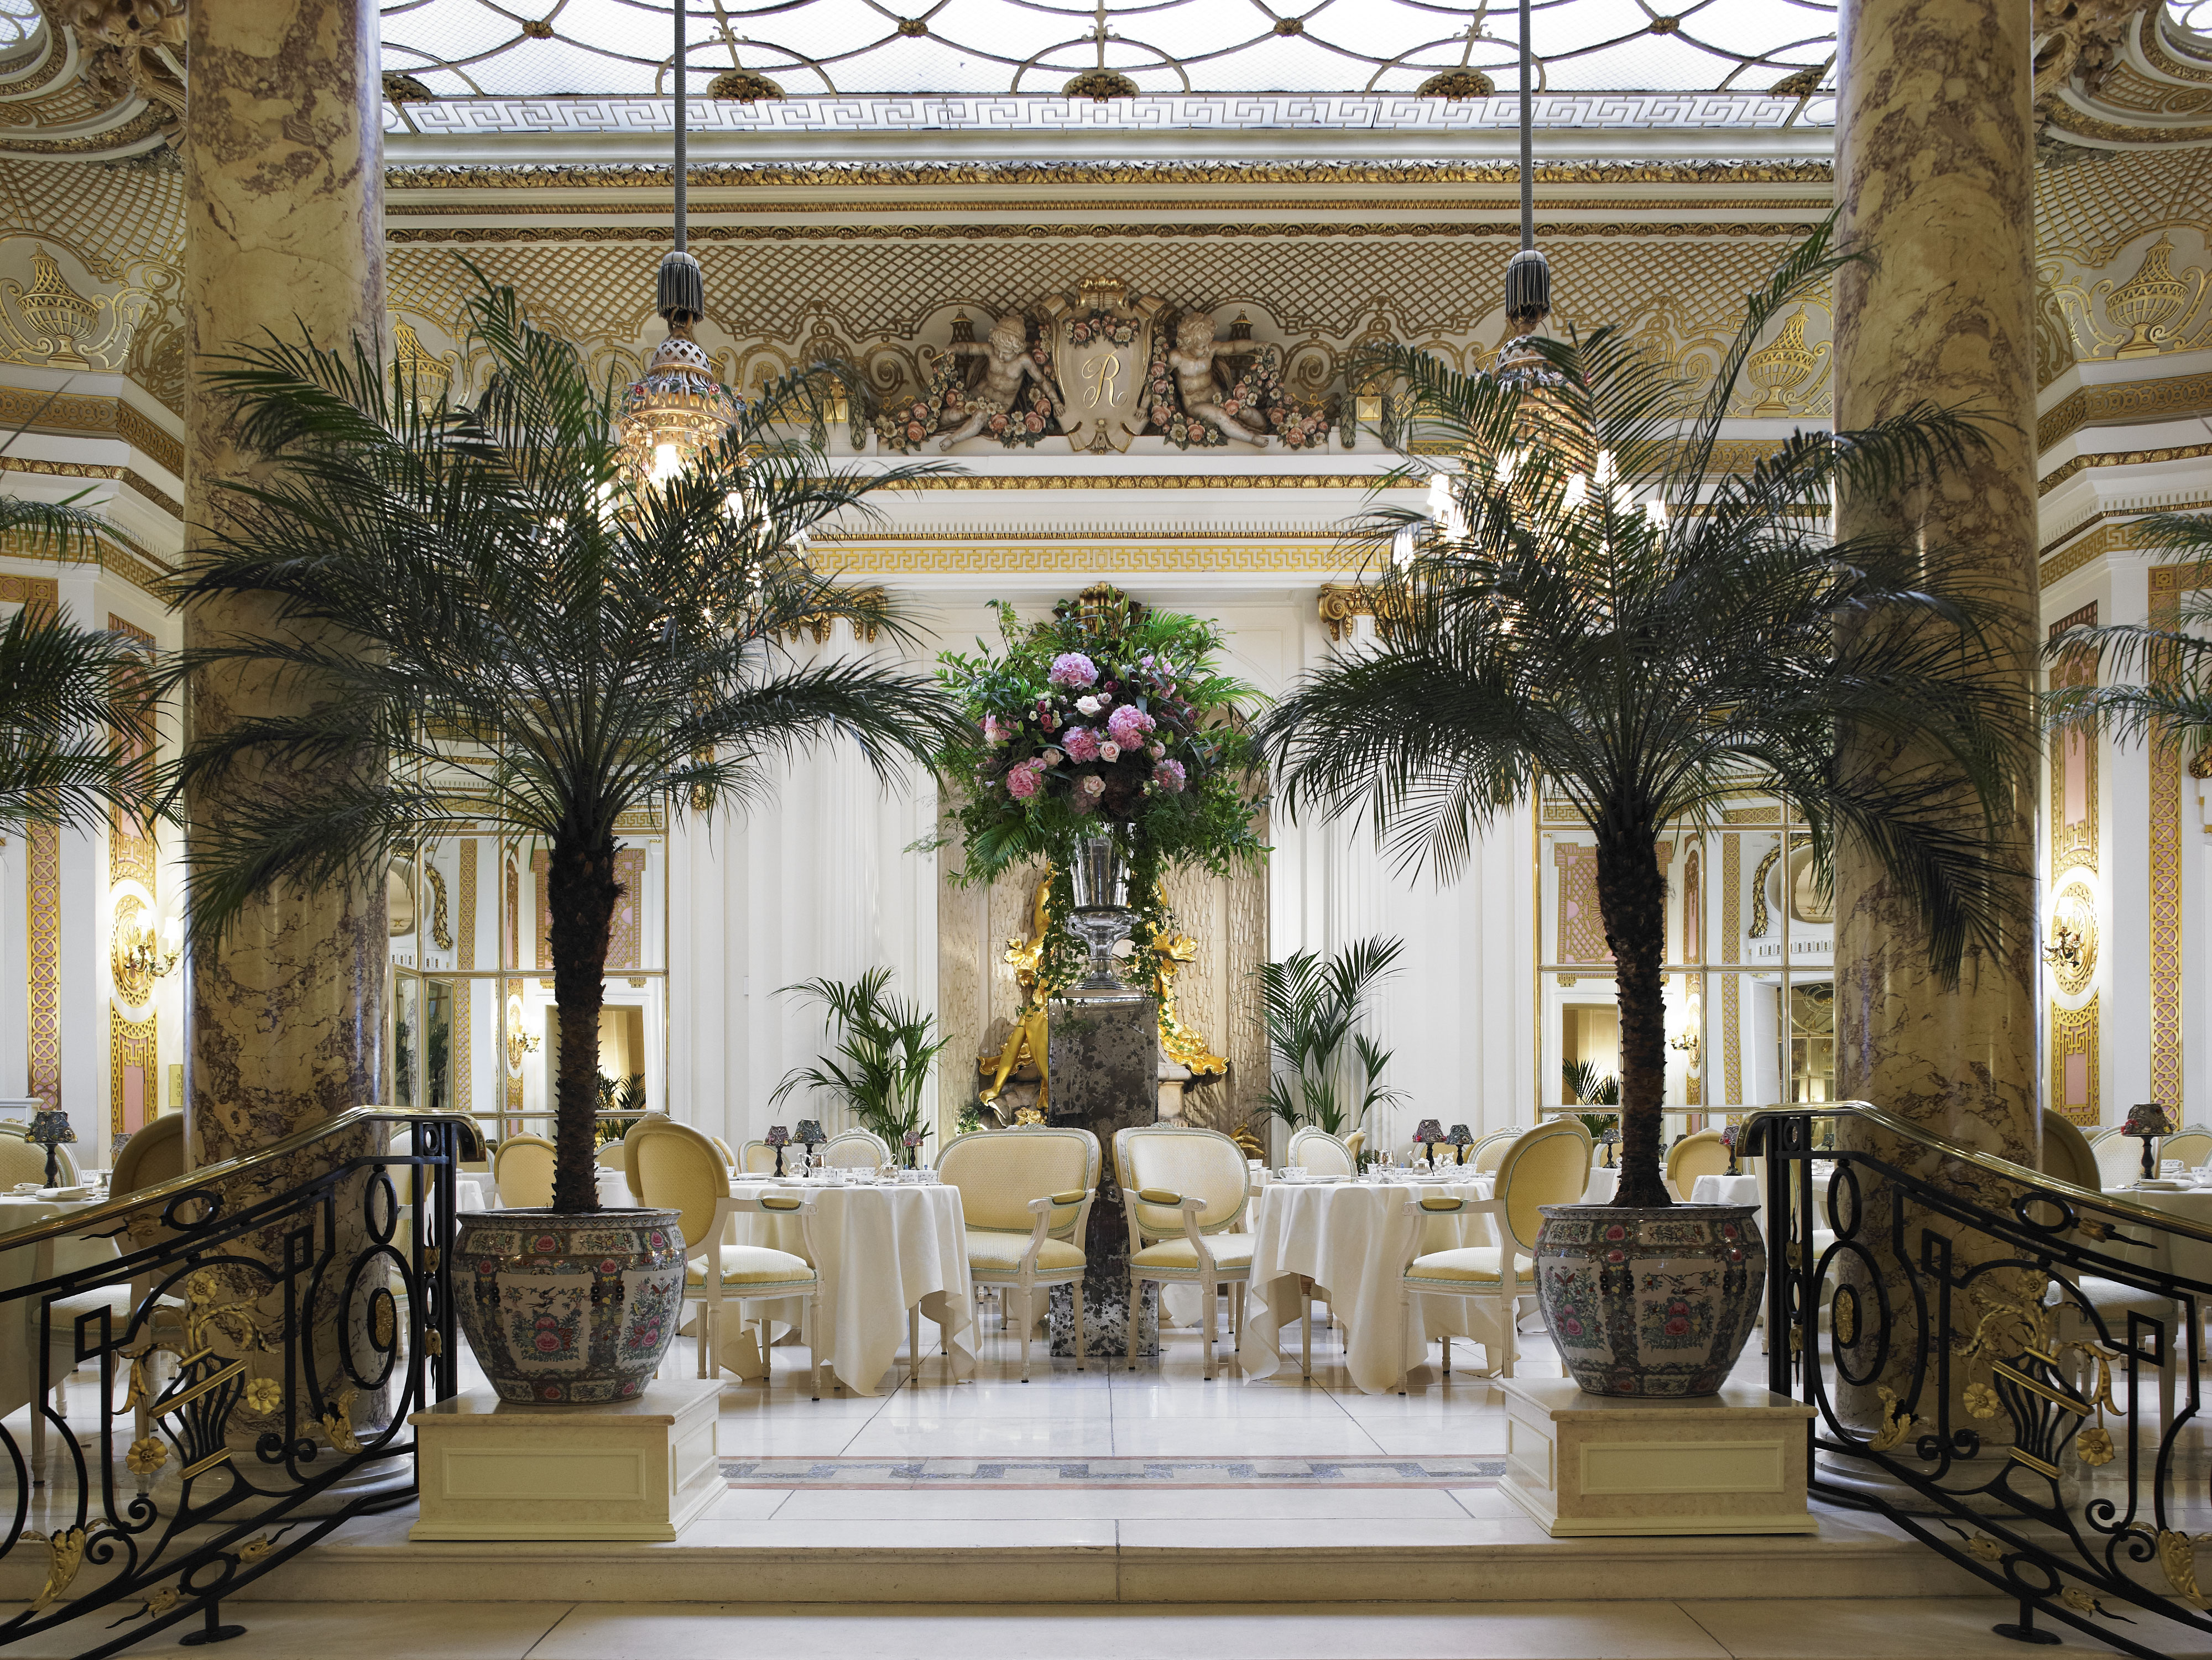 Reserve a table at Afternoon Tea at The Ritz